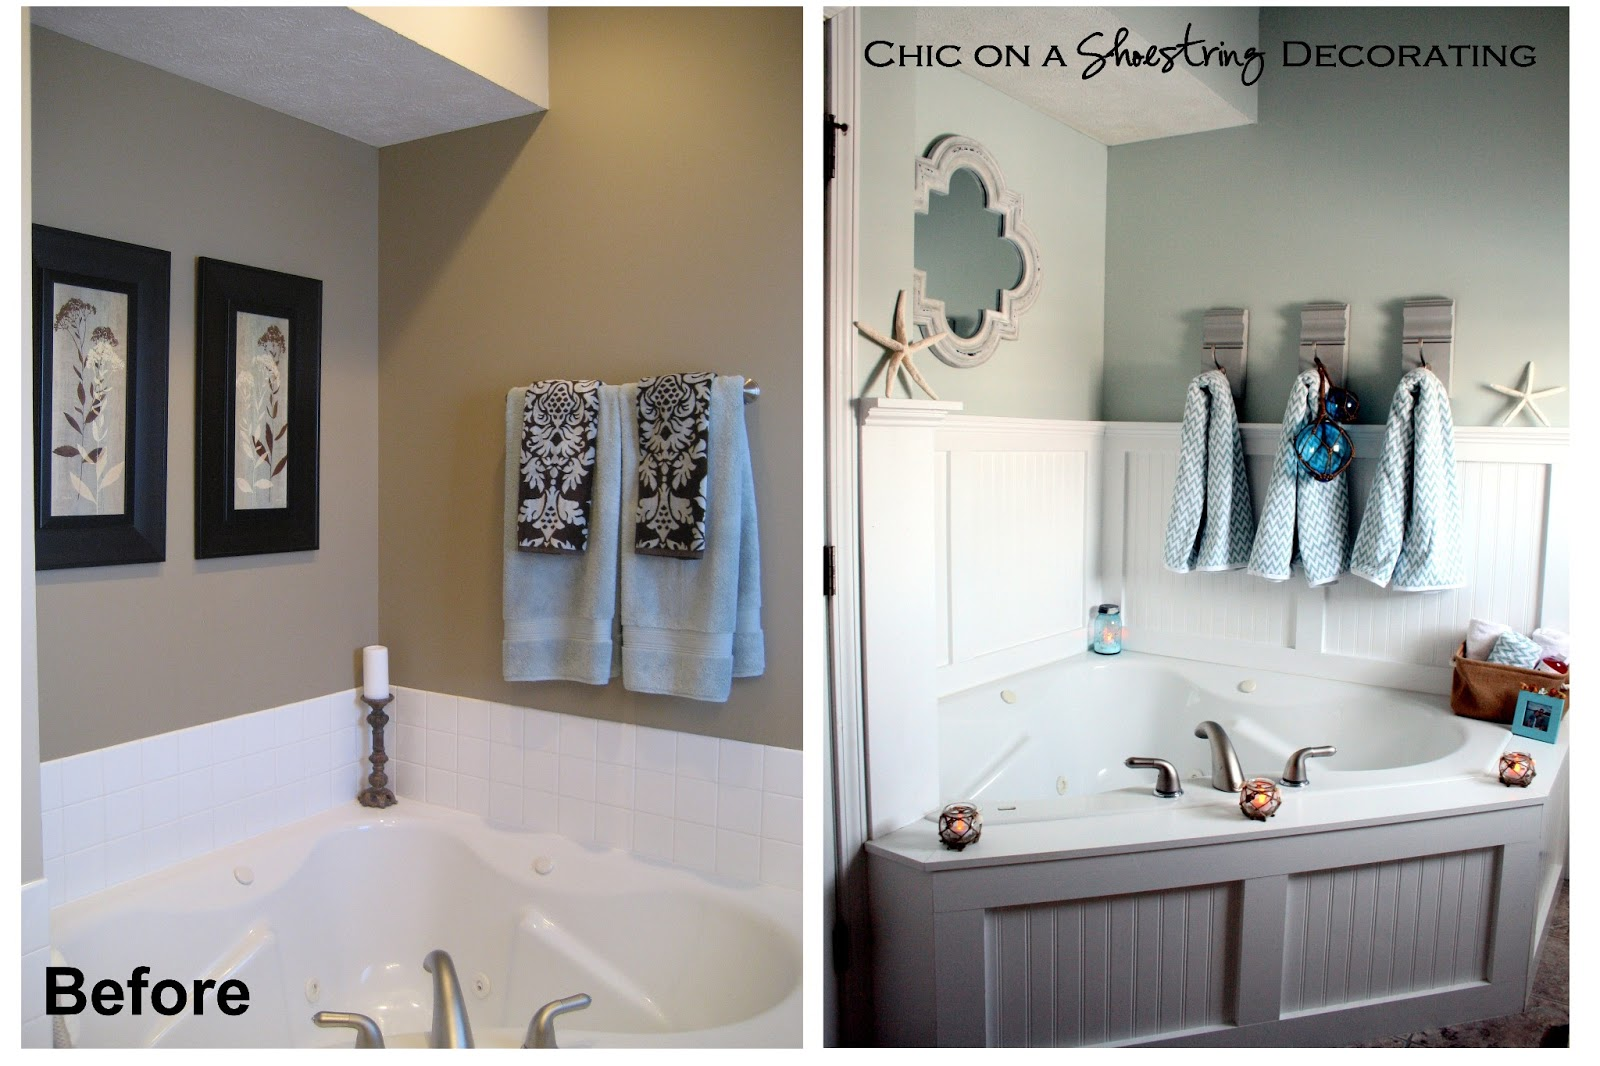 Chic on a shoestring decorating beachy bathroom reveal for Cheap decorating bathroom ideas